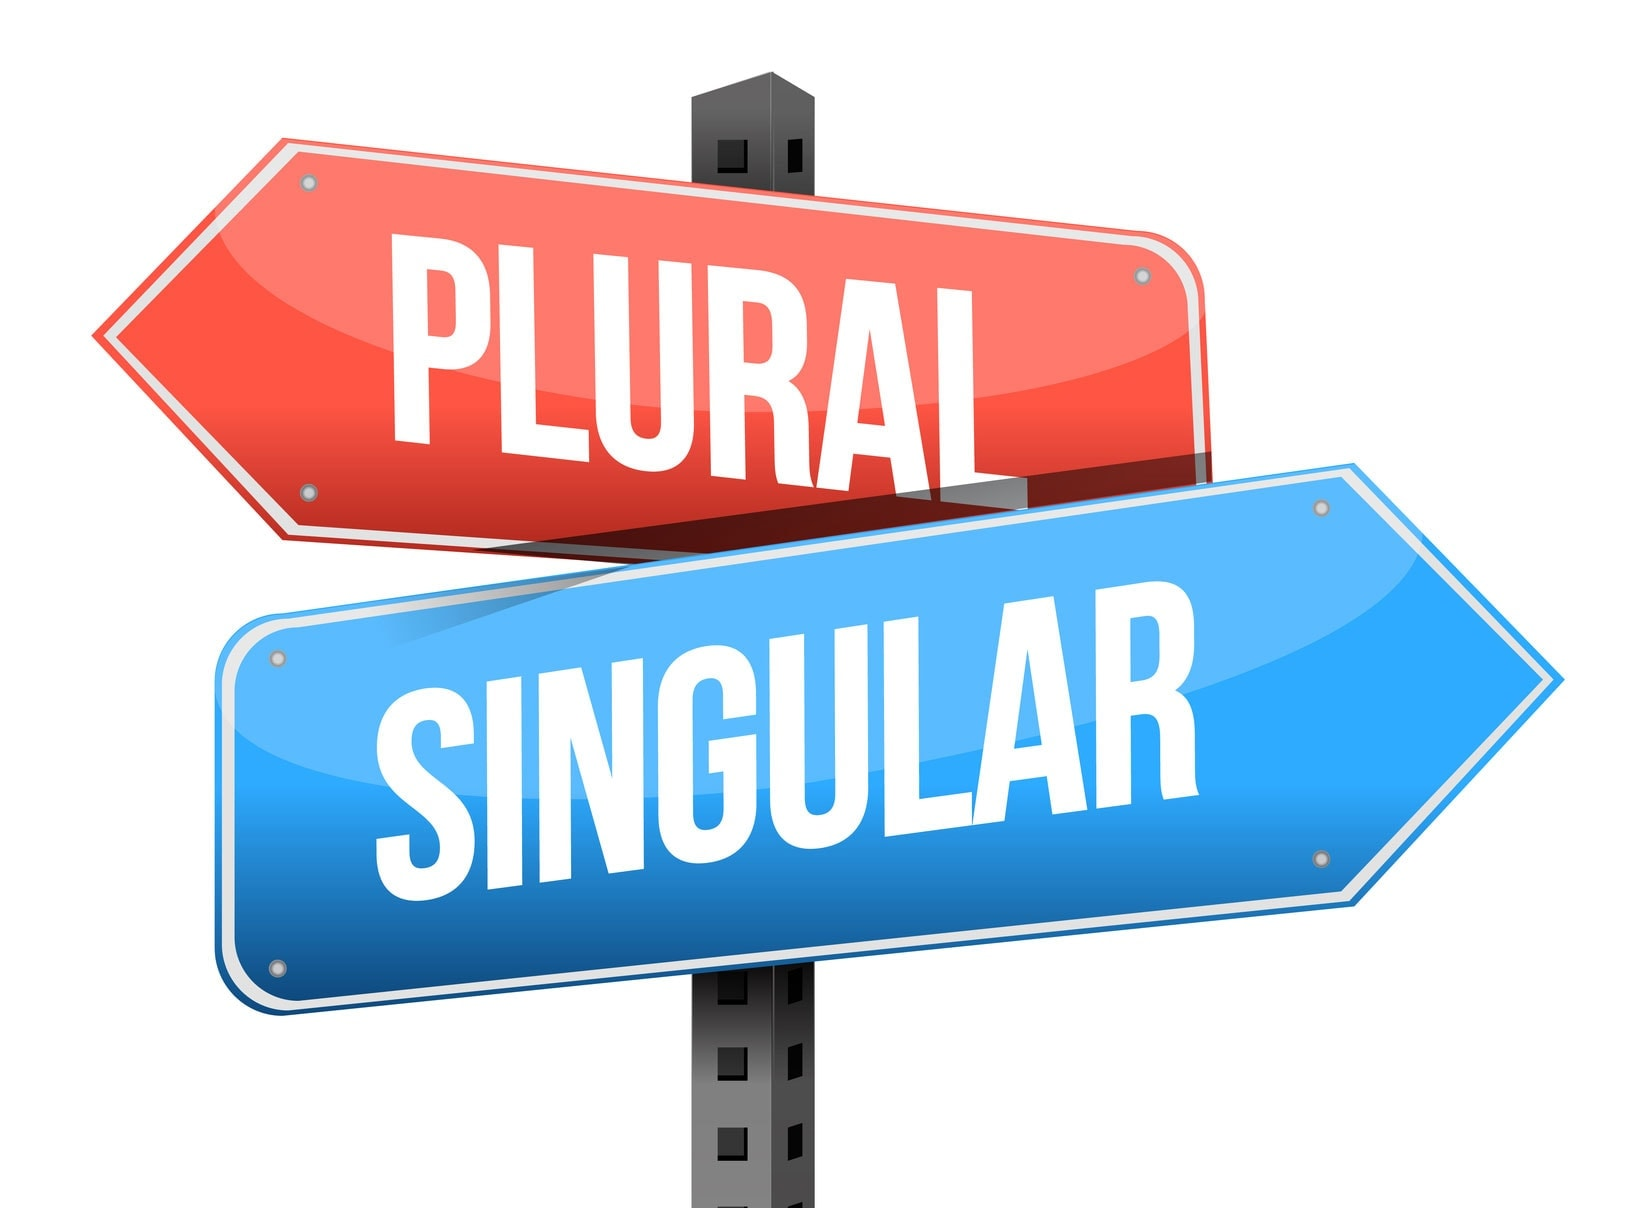 singular vs plural keywords